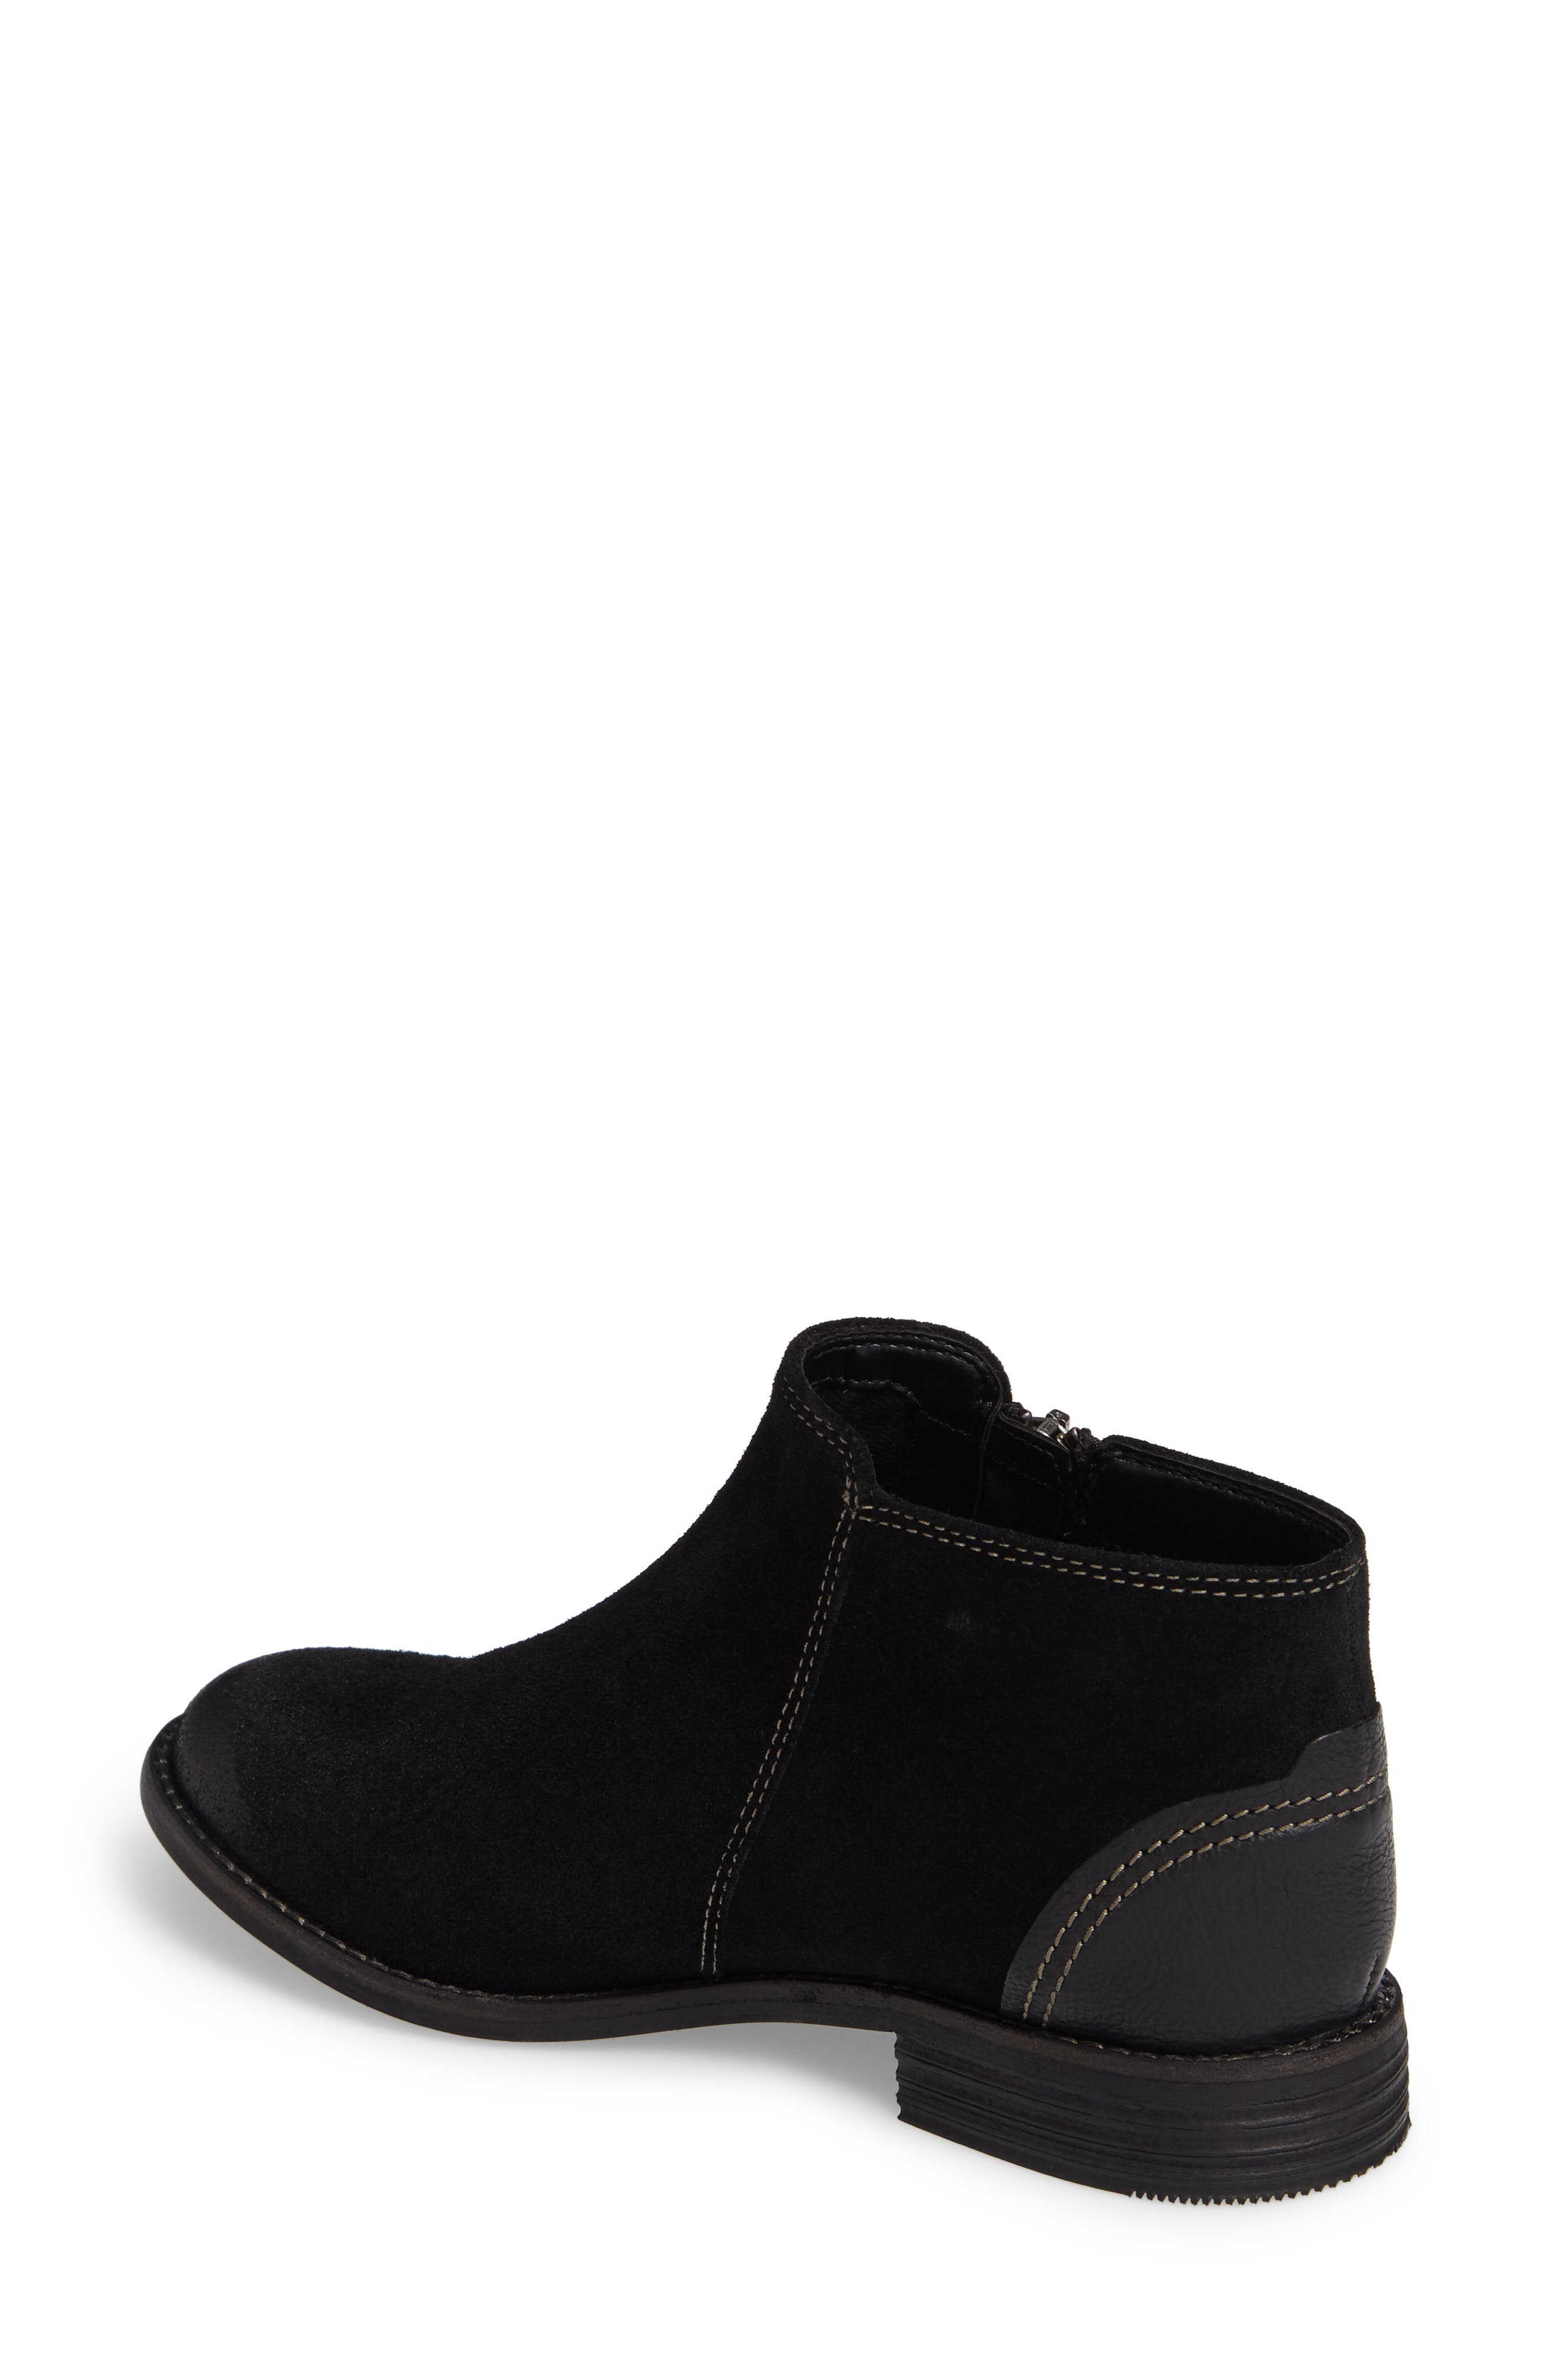 Maypearl Juno Ankle Boot,                             Alternate thumbnail 2, color,                             BLACK SUEDE